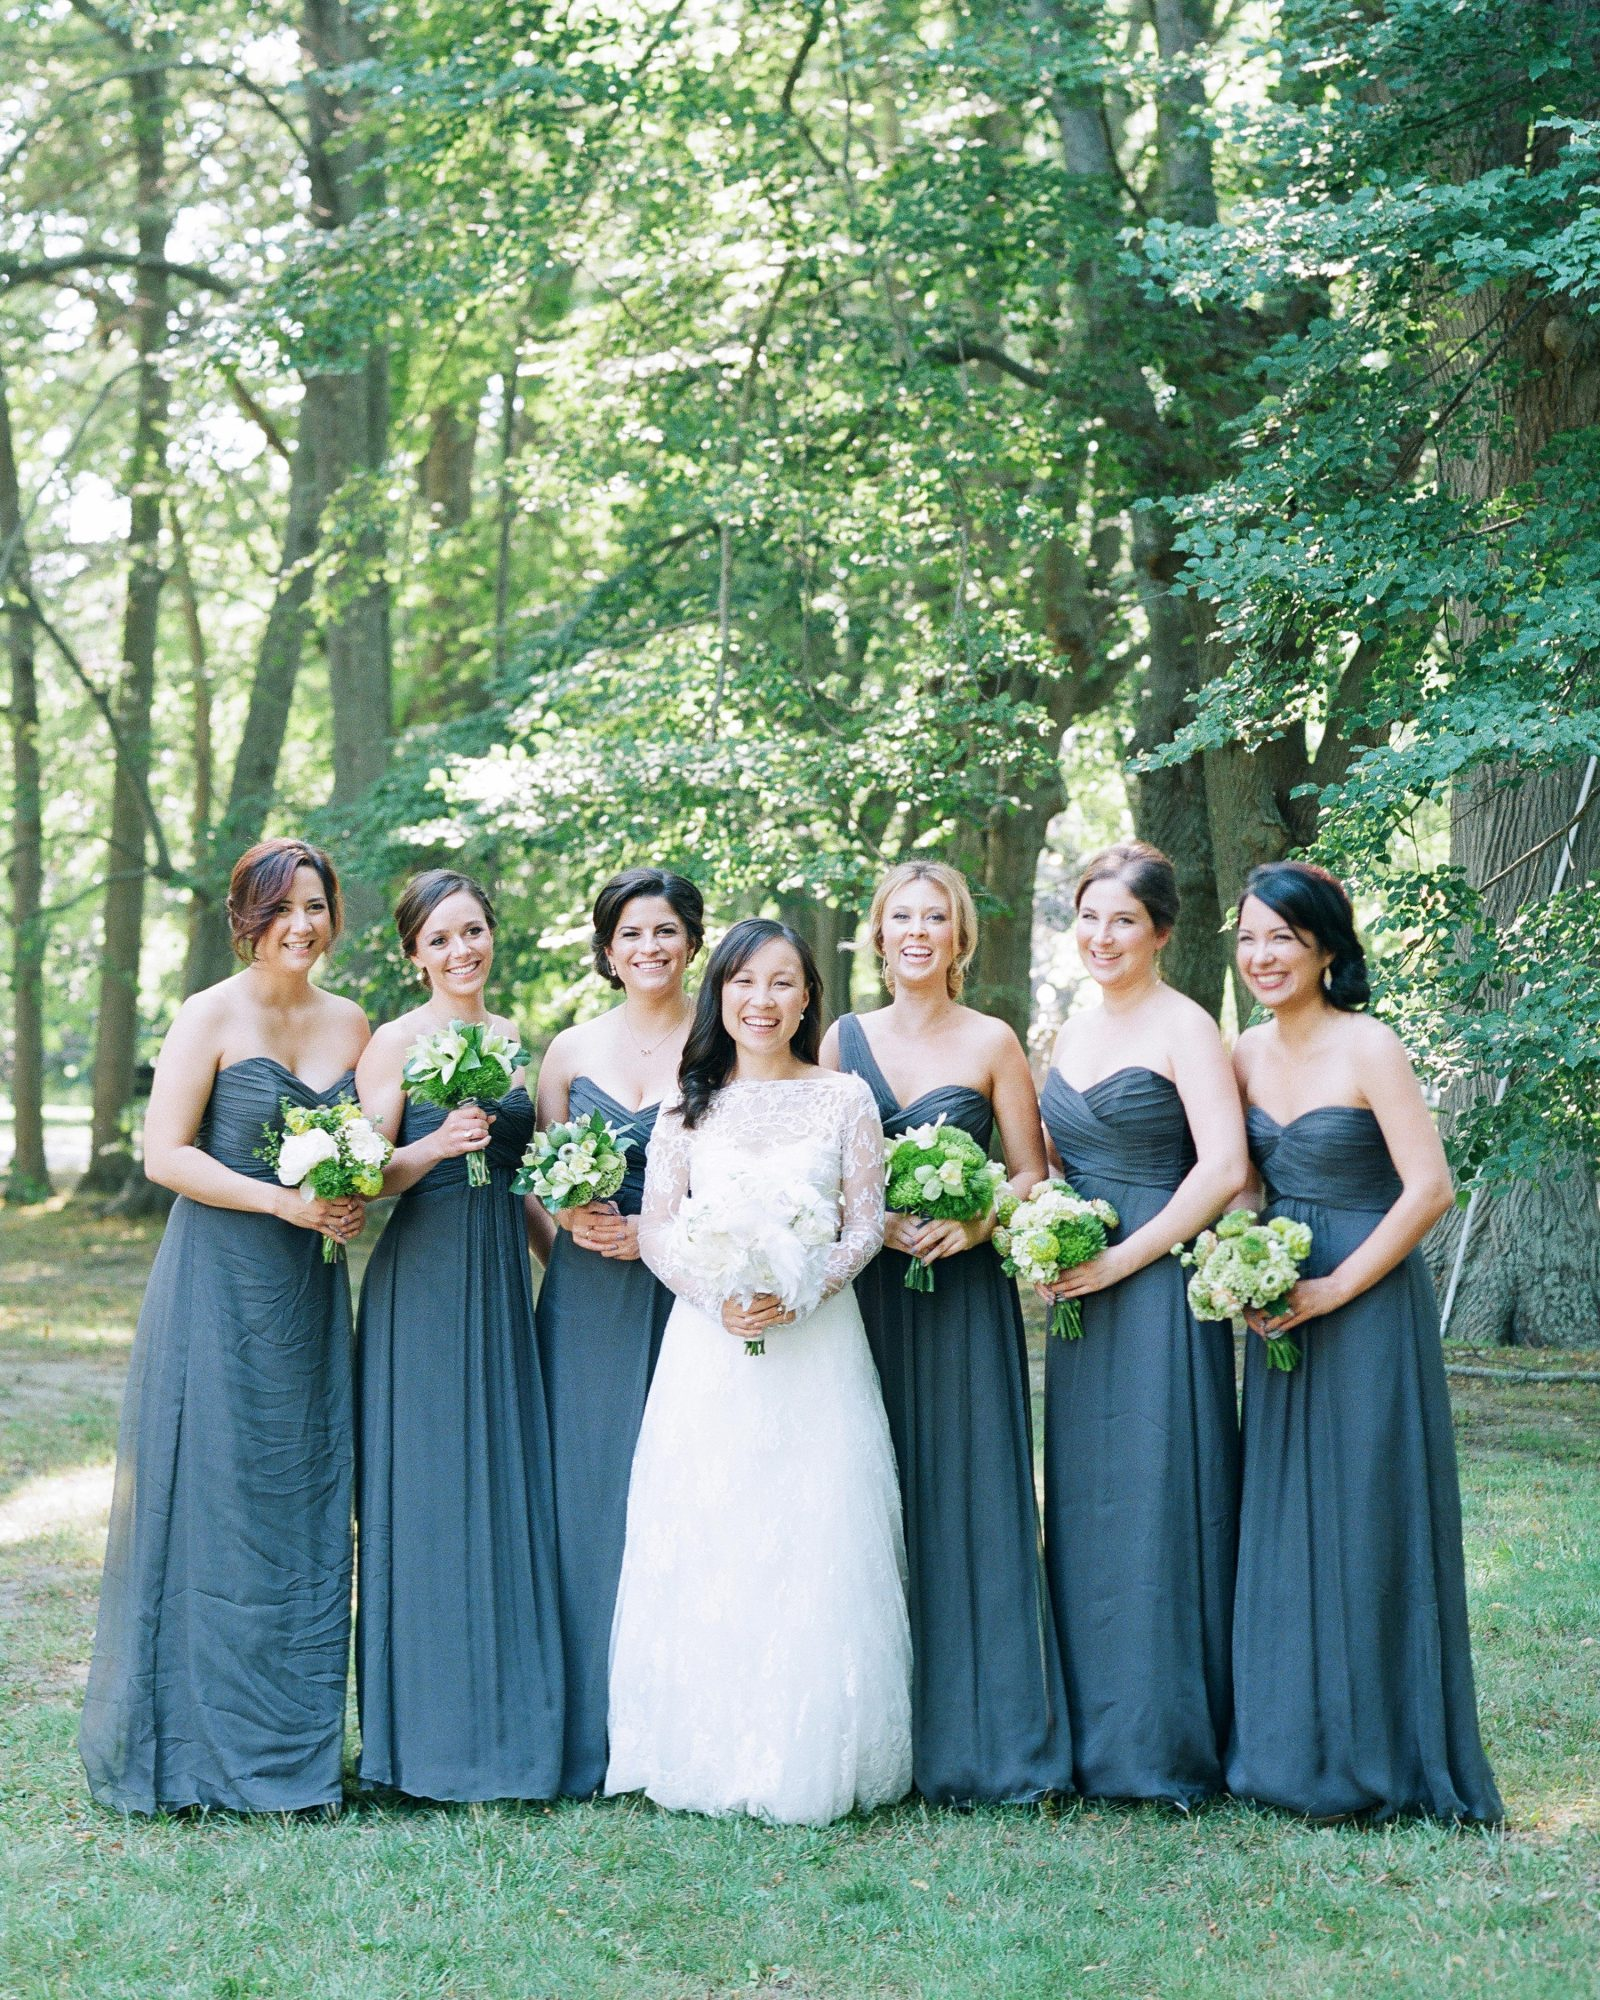 lissy-steven-wedding-newport-bridesmaids-098-elizabethmessina-s112907-0516.jpg